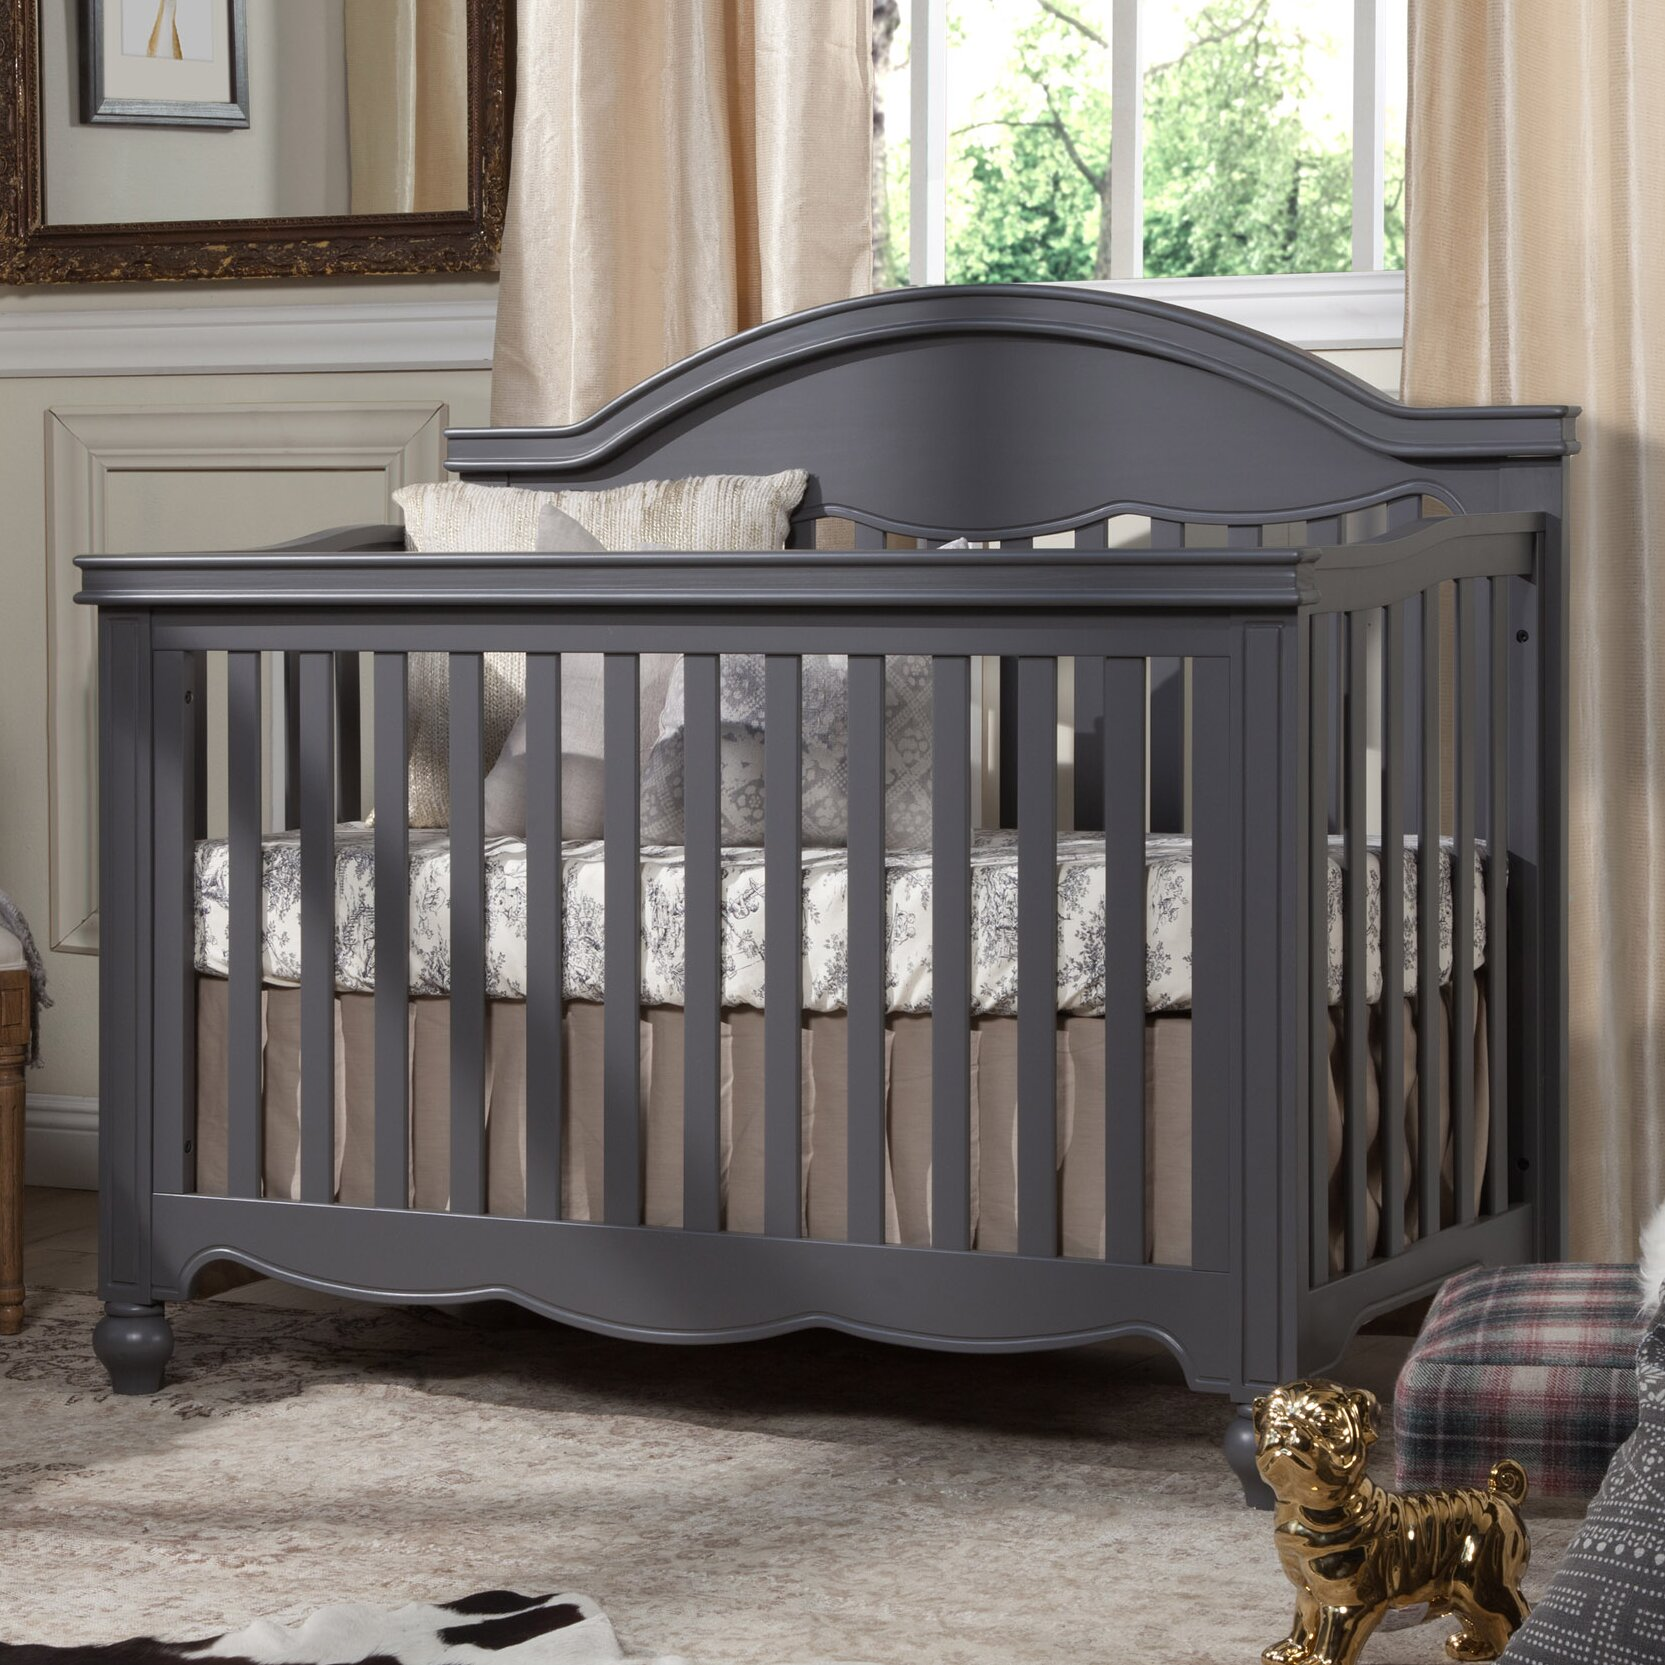 Brookfield fixed gate crib for sale - Million Dollar Baby Classic Etienne 4 In 1 Convertible Crib